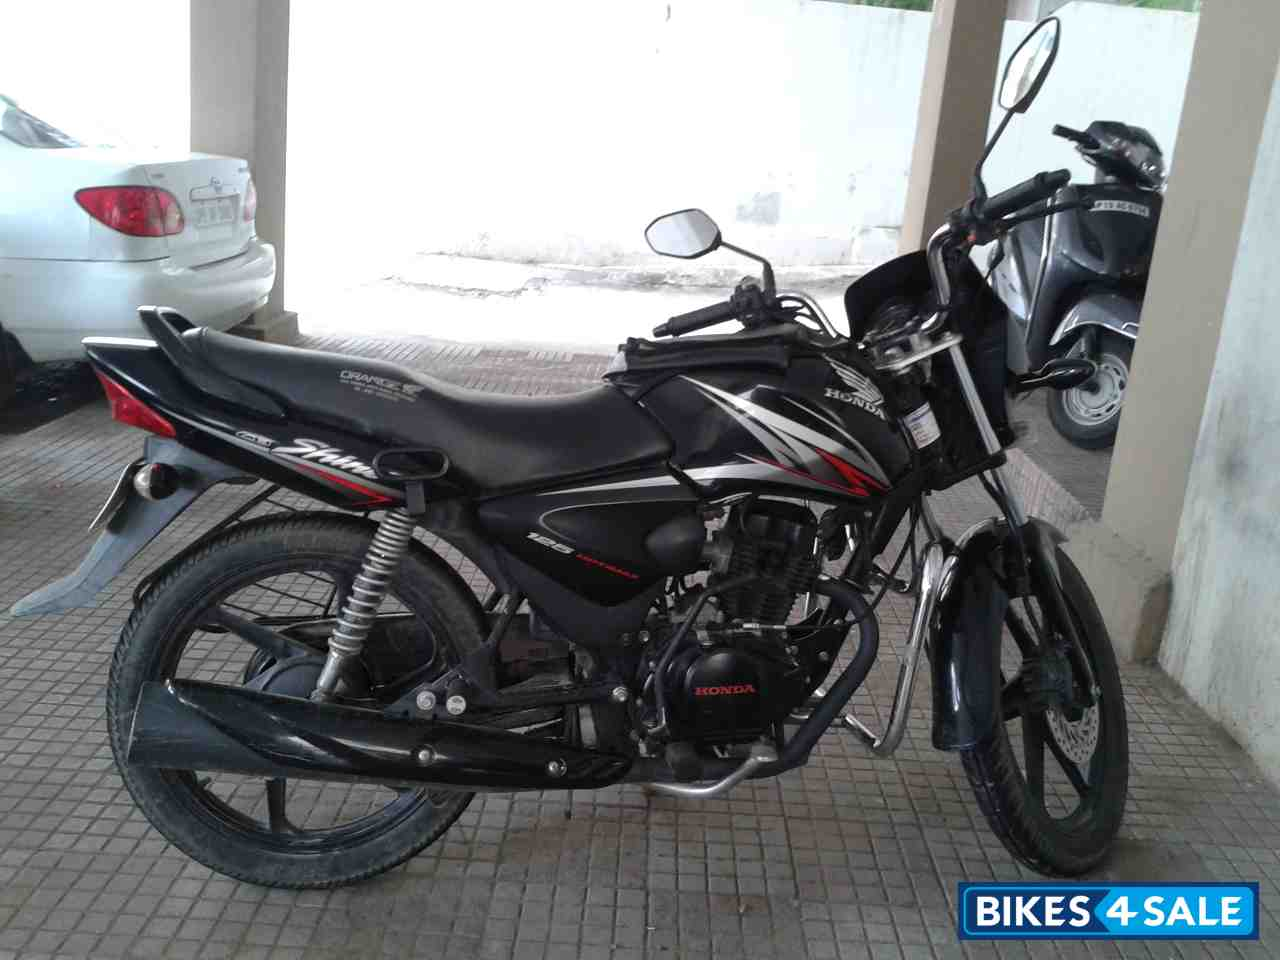 Second Hand Honda Shine In Hyderabad Bike Is In Excellent